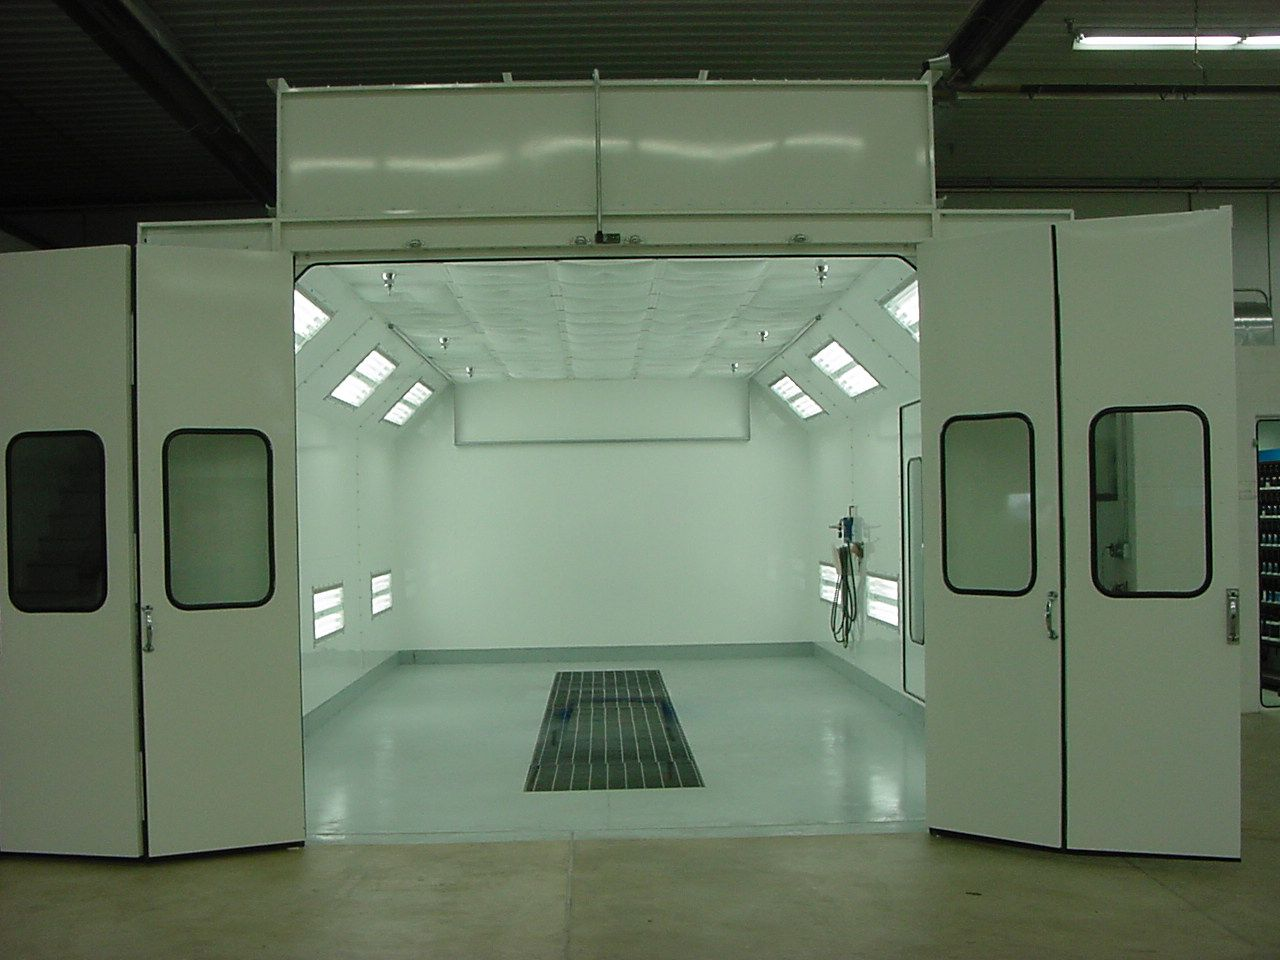 Paint Booth Clean Room For Clear Coating Or Occasional